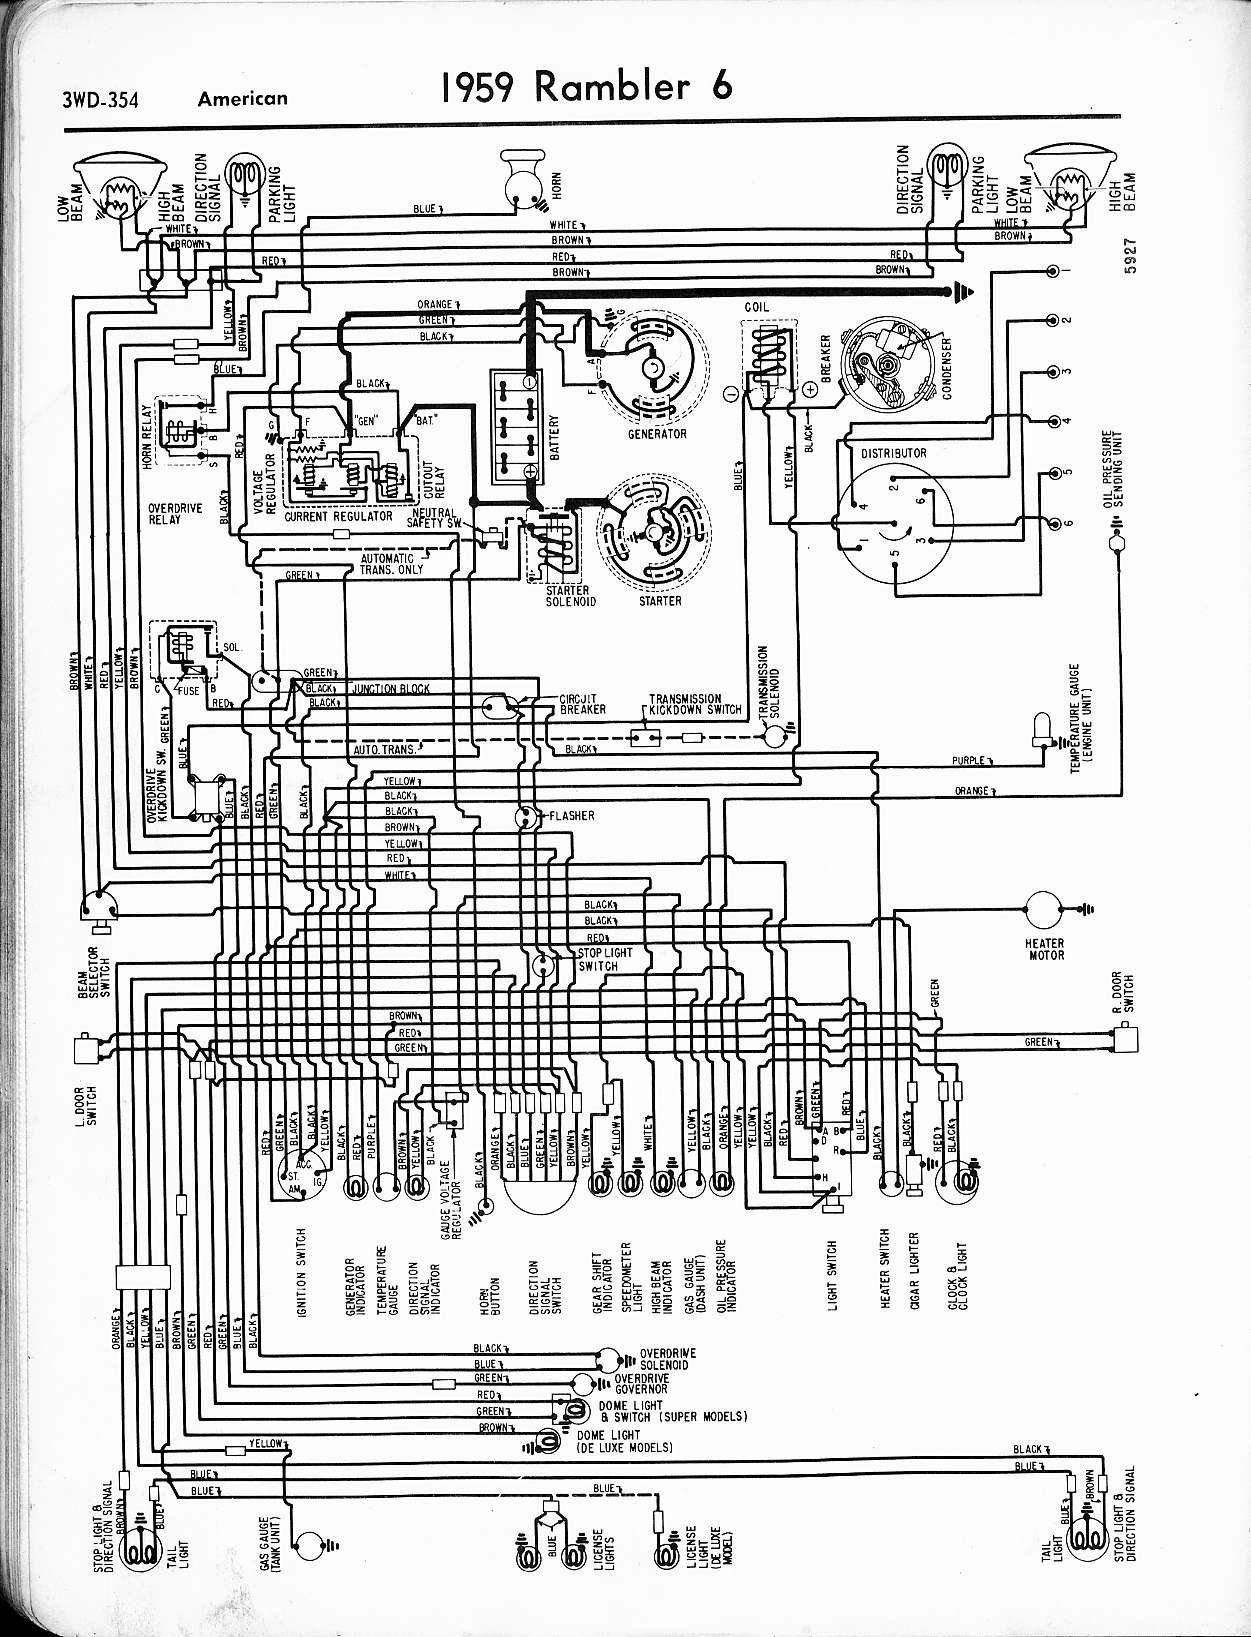 Rambler Wiring Diagrams The Old Car Manual Project Power Wheels Harness Free Download Diagram Schematic 1959 6 American